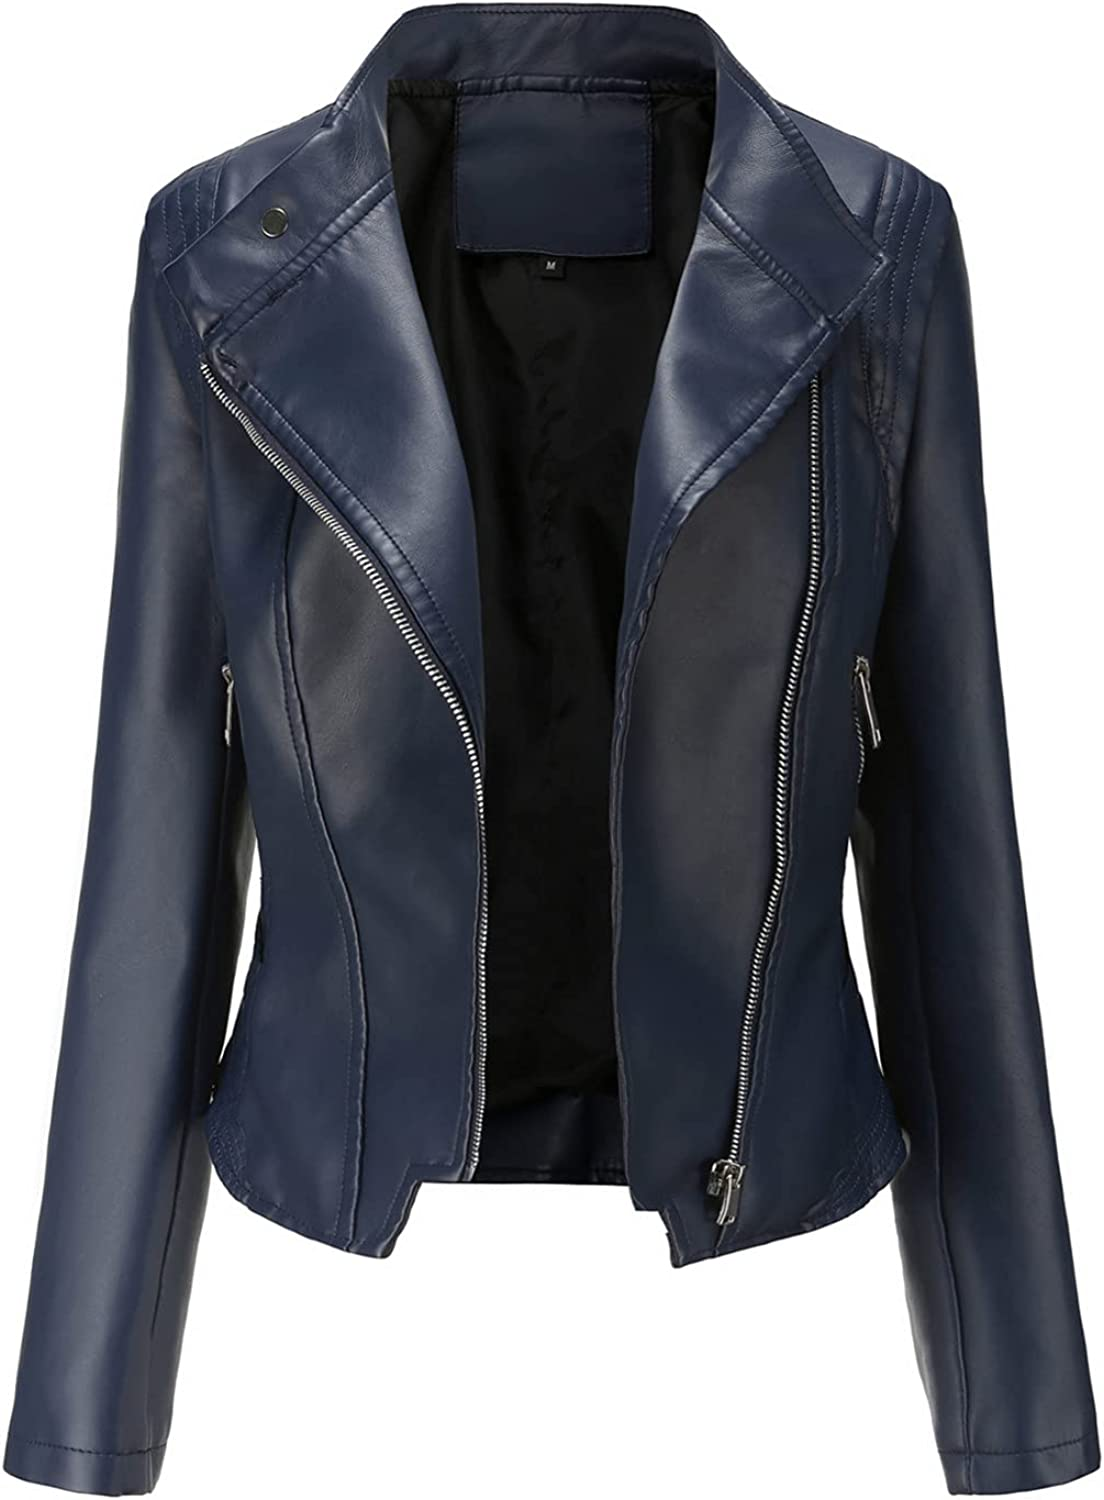 Euone_Clothes Quality Outlet sale feature inspection Winter Coats for Women Fau Leather Jackets Womens